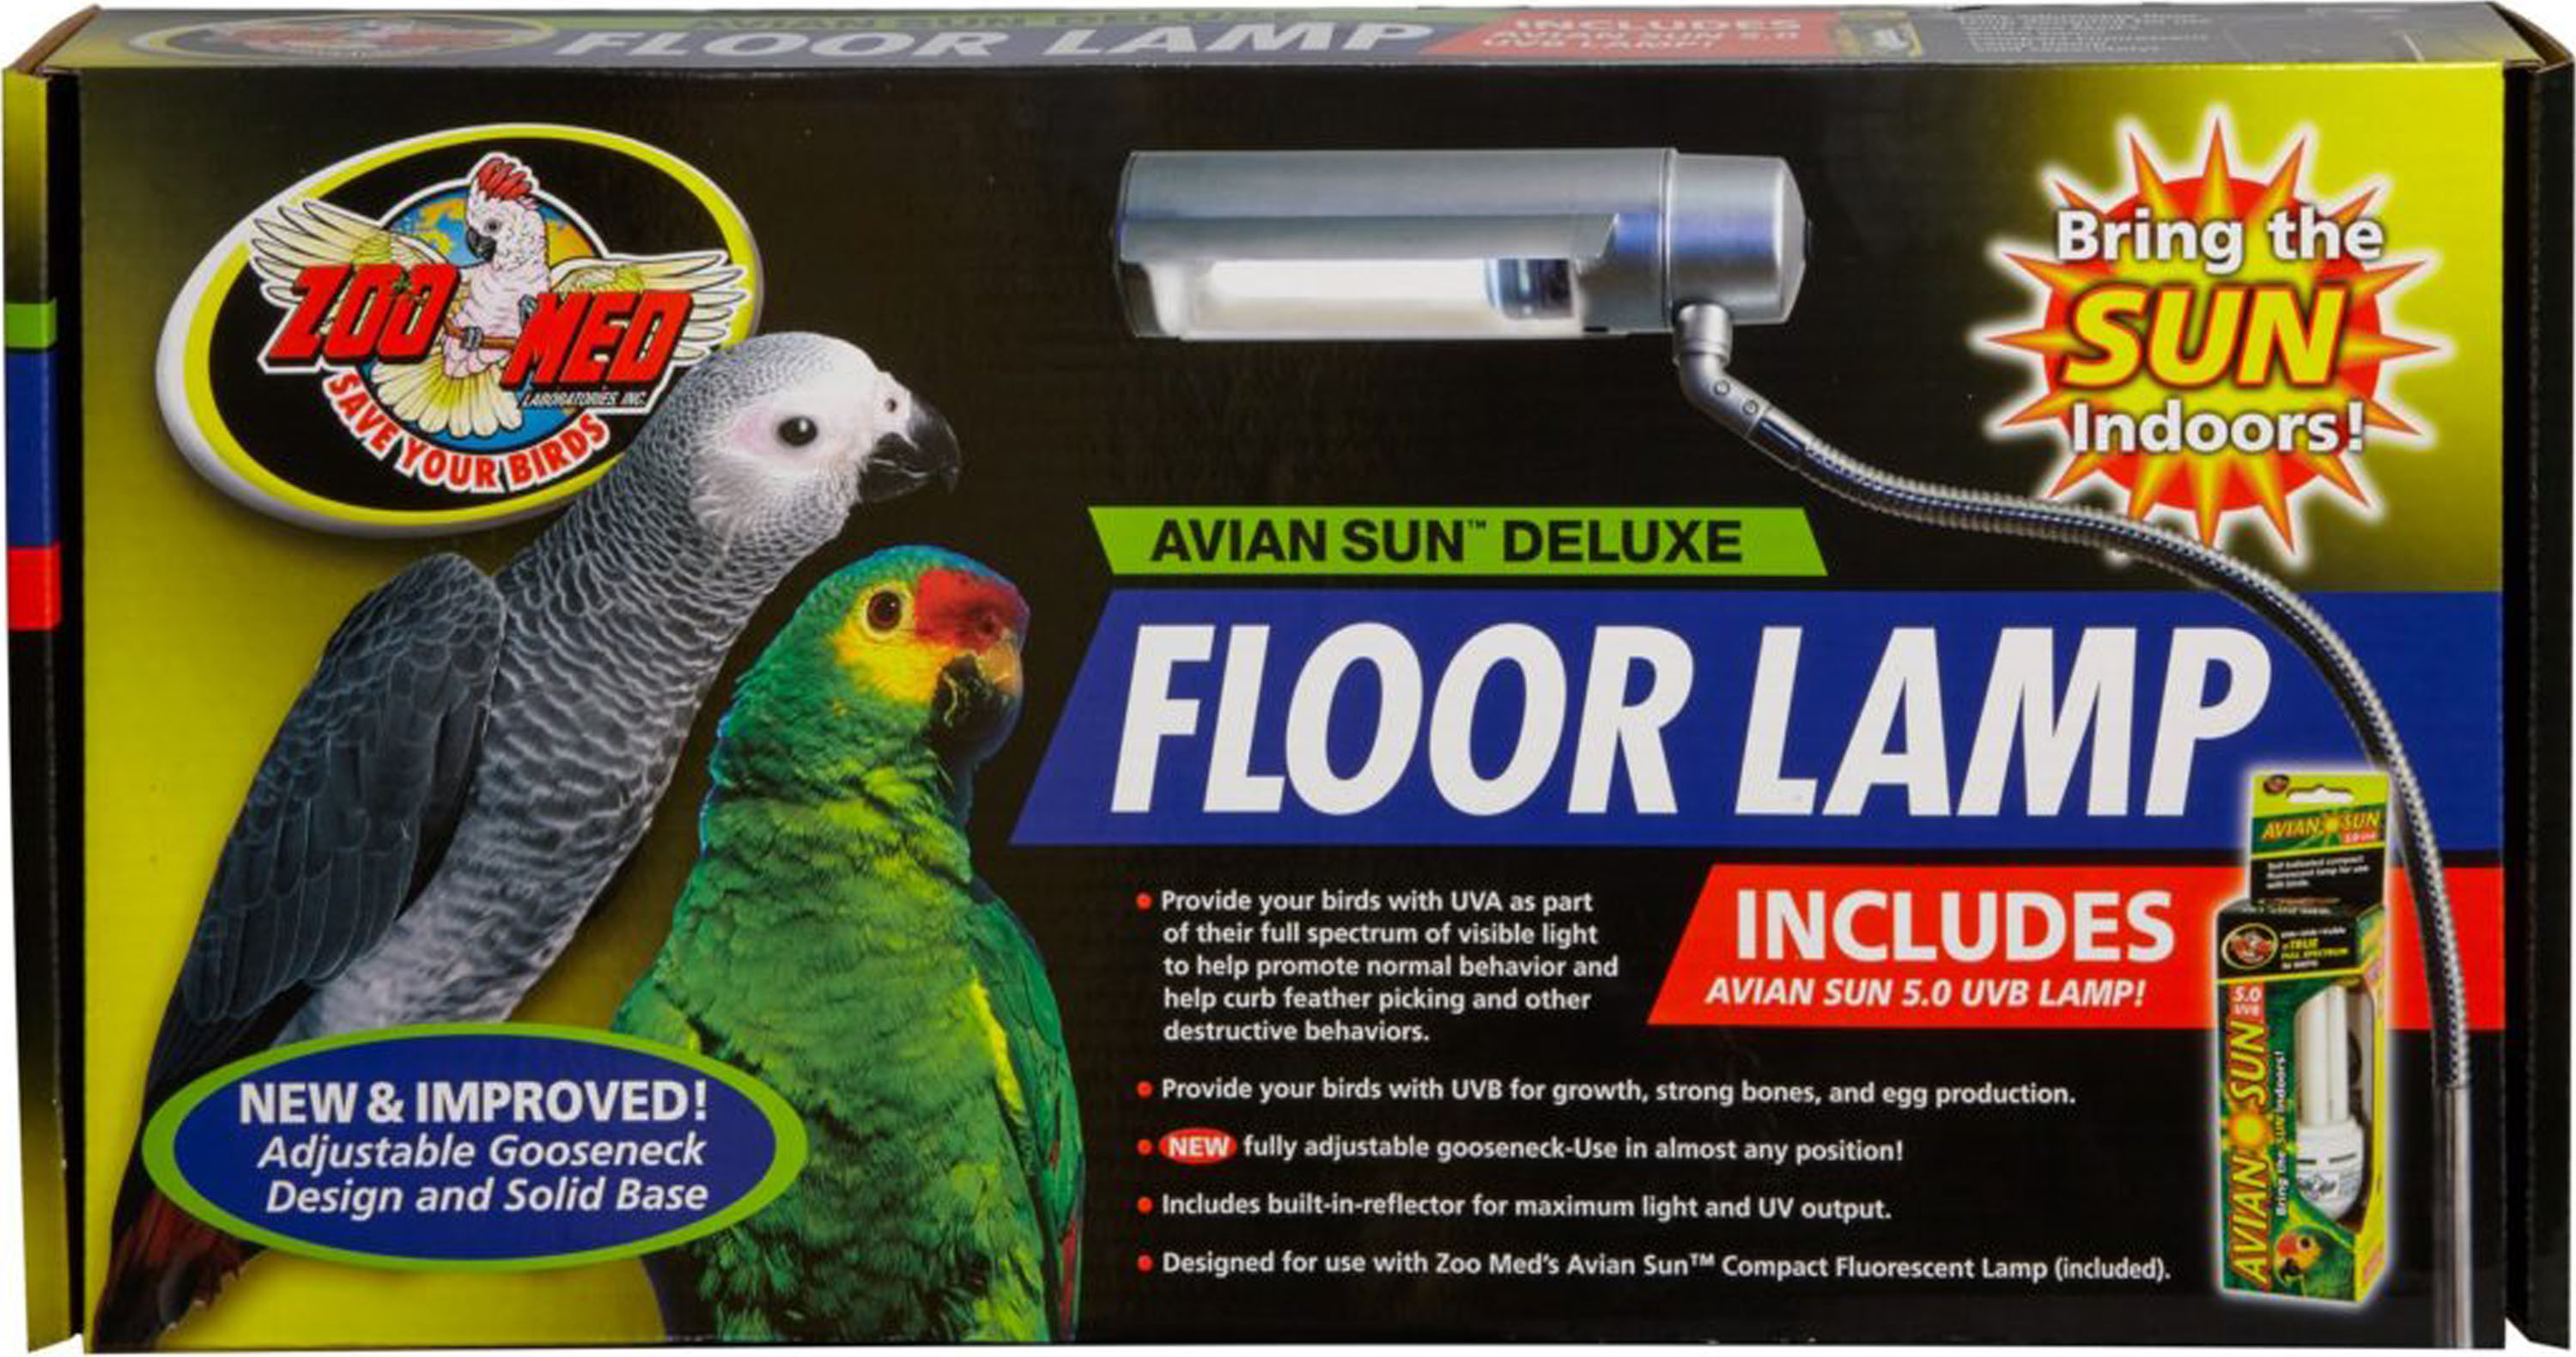 Aviansun Deluxe Floor Lamp With Avian Sun Walmart Com